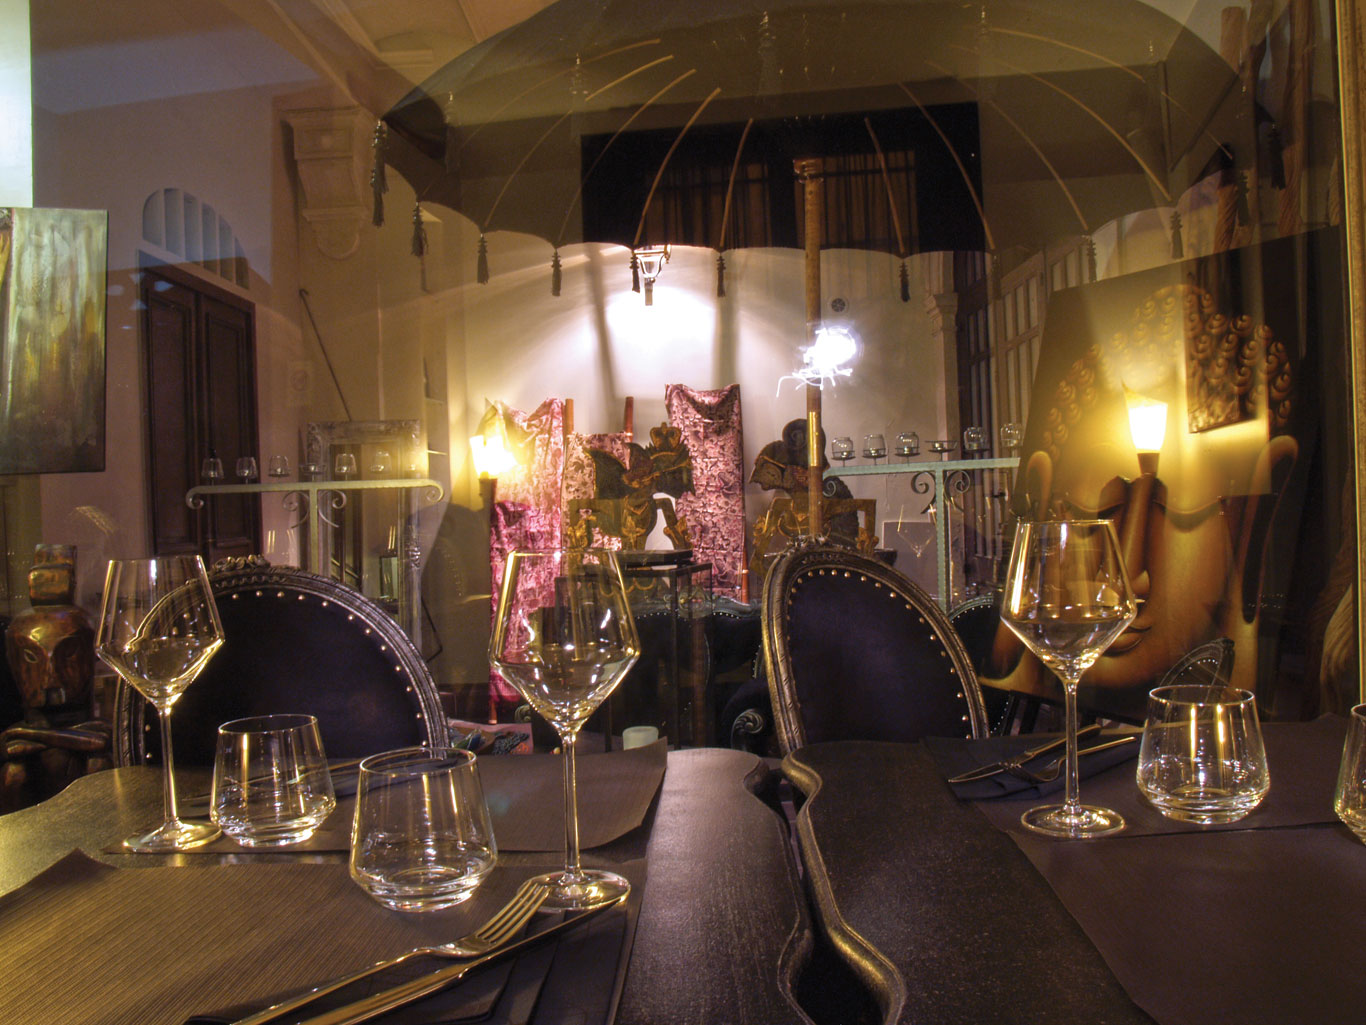 04-le-boudoir-restaurant-table-patio-Perpignan